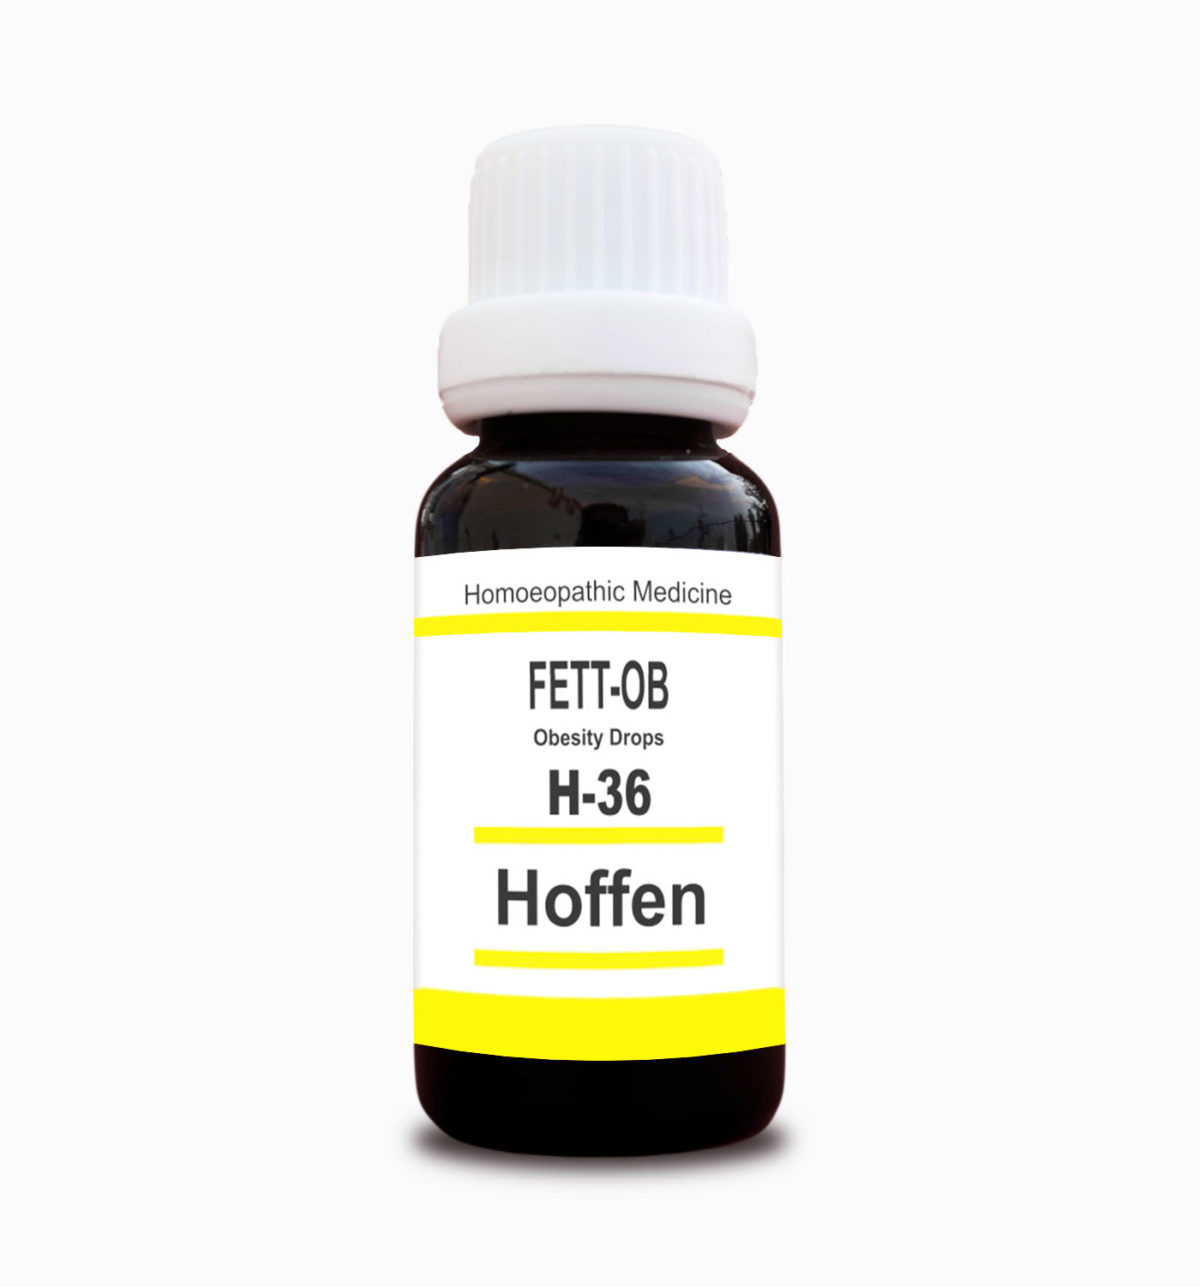 Homoeopathic preparation to normalize the metabolism in obese patients. It is a remedy for obesity and possesses slimming properties.